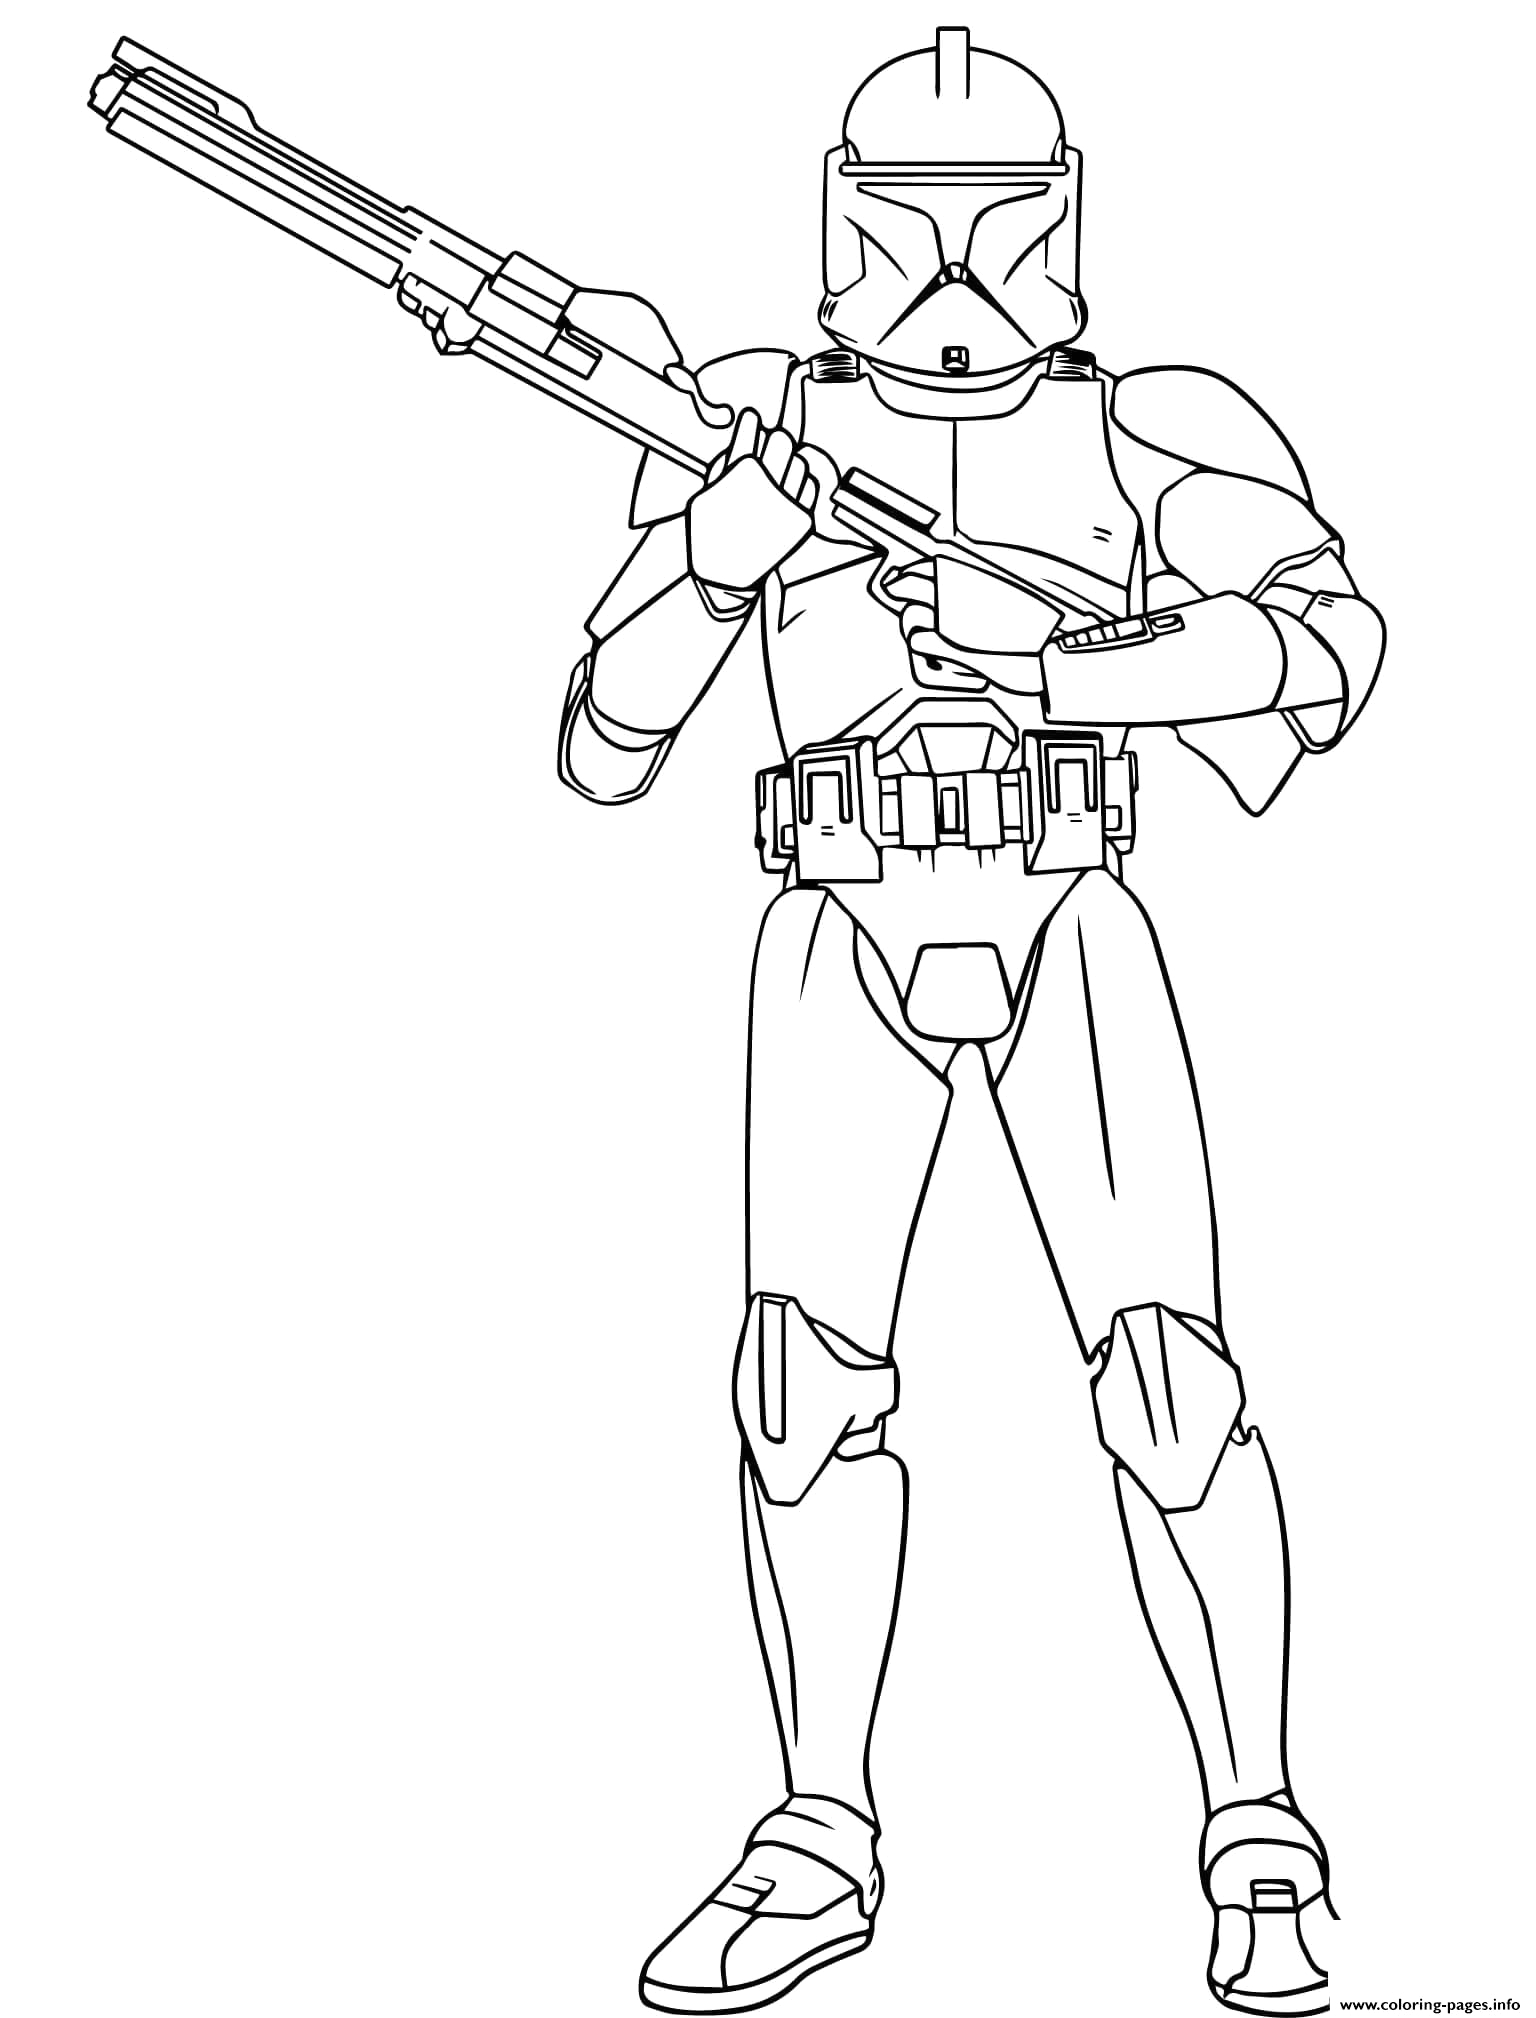 boba fett star wars episode vi return of the jedi printable coloring pages book